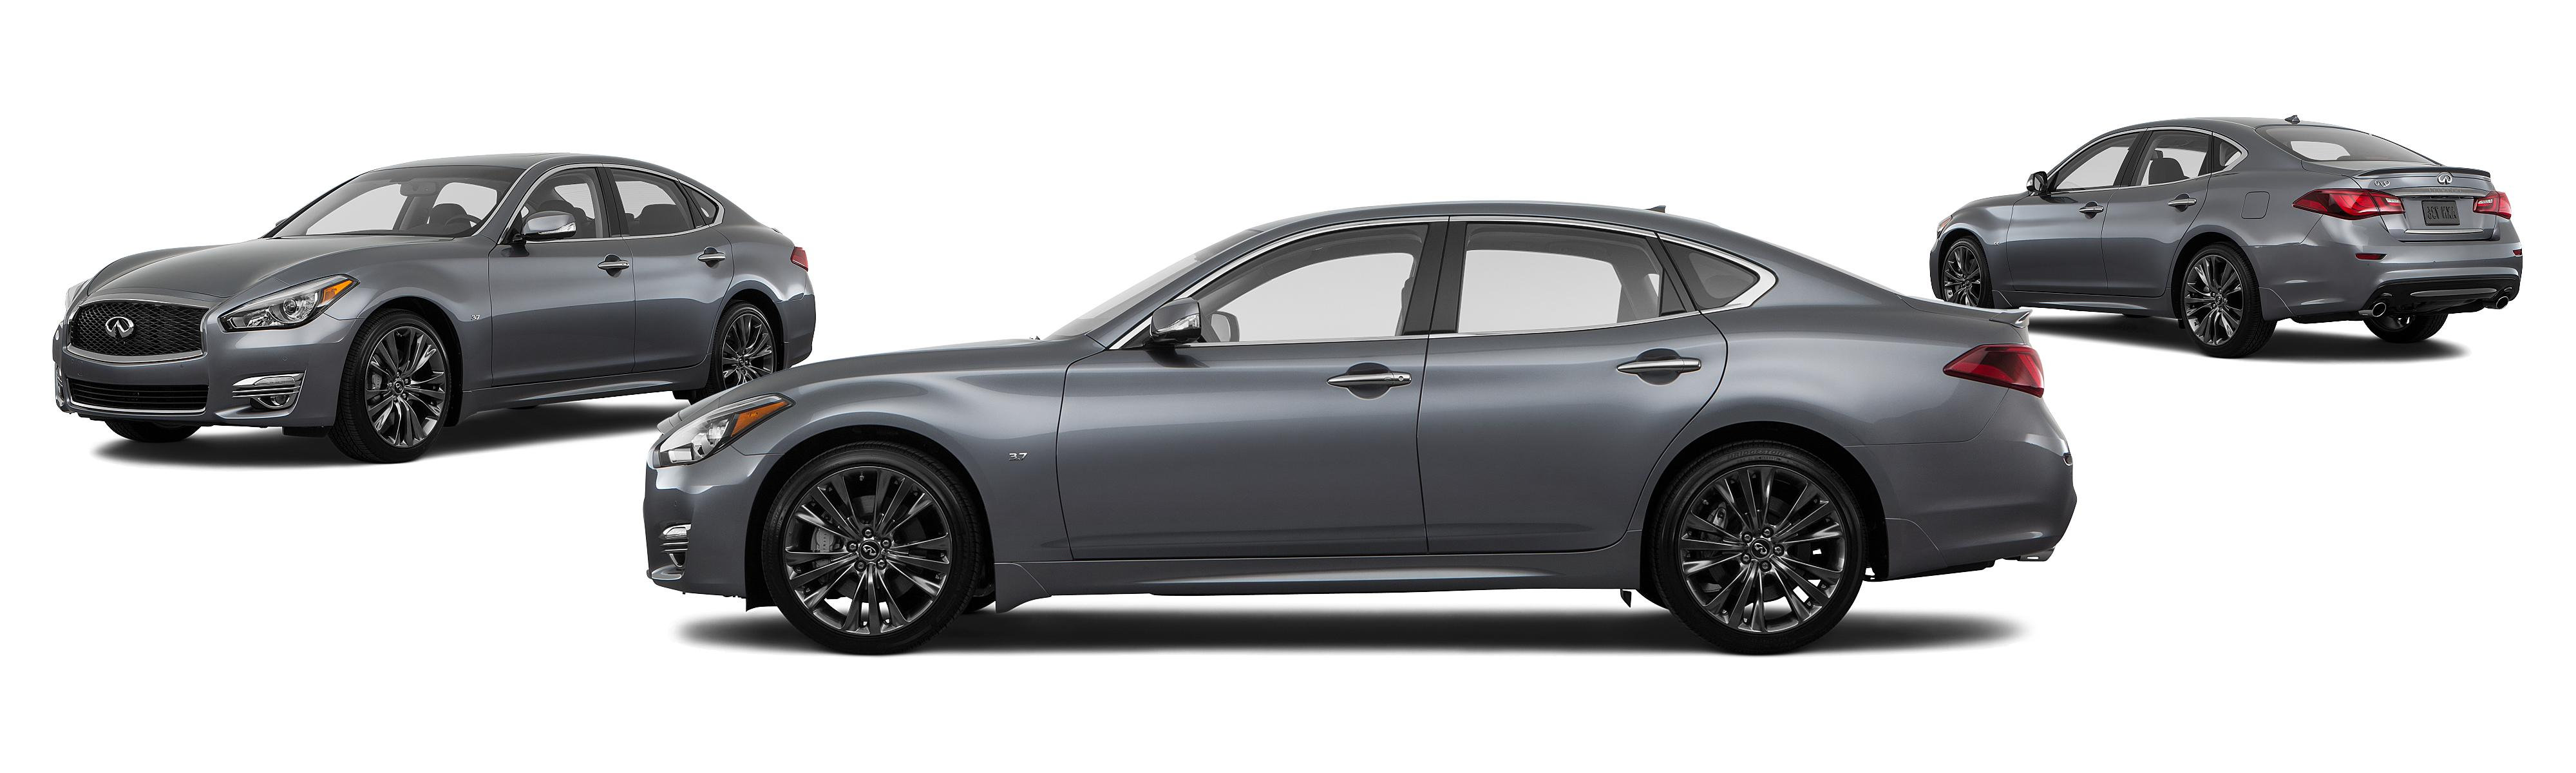 of infiniti infinity facelift index lease img